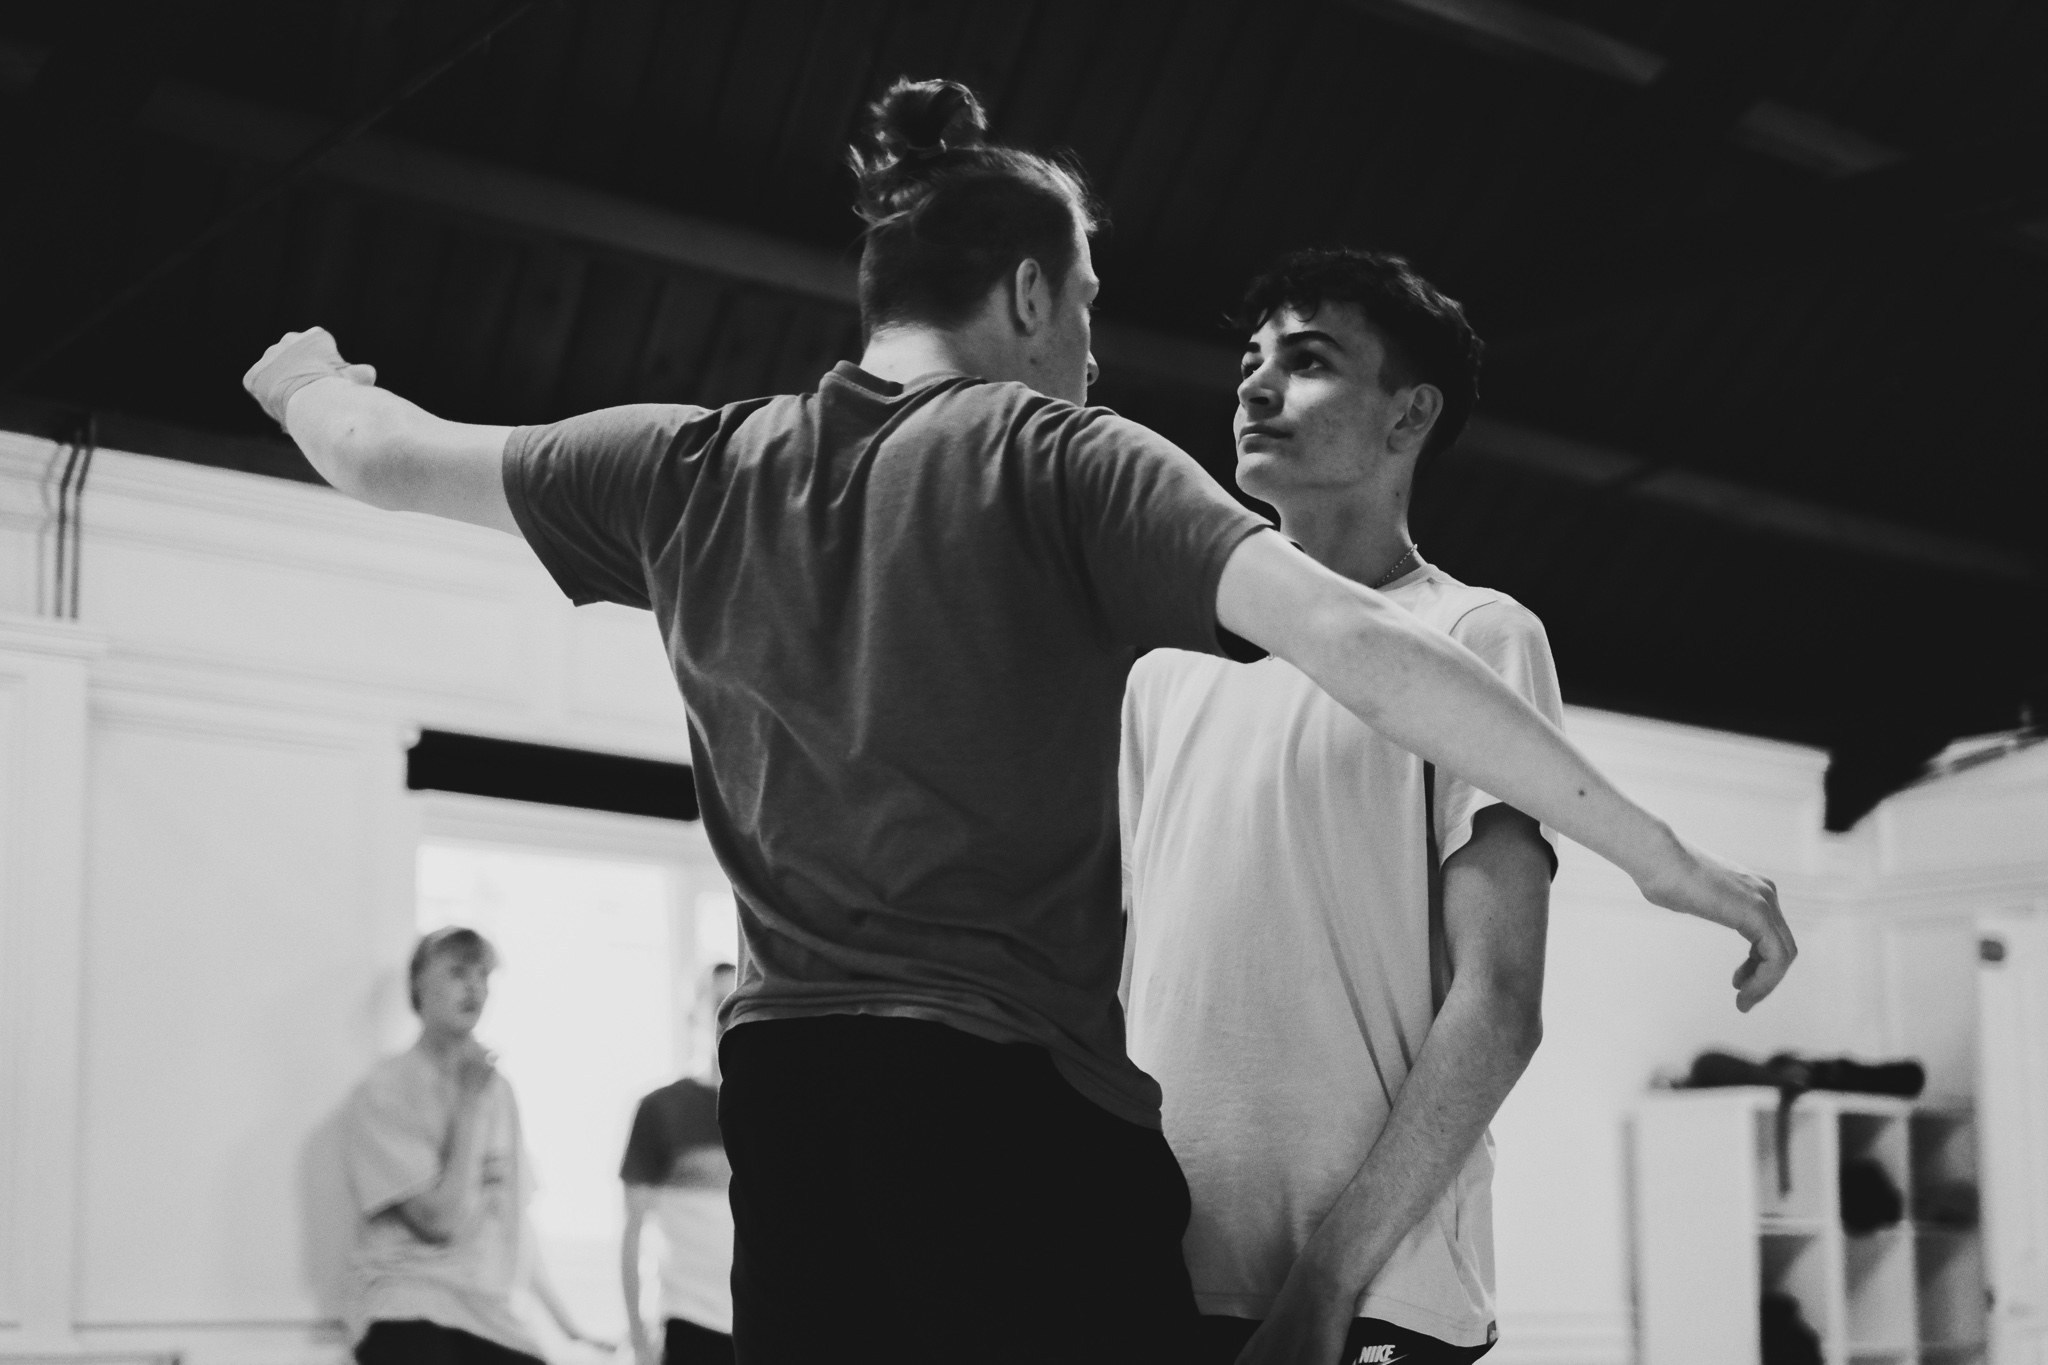 Two teenage boys face each other during a dance rehearsal, one has his arms raised, while the other stares at him directly